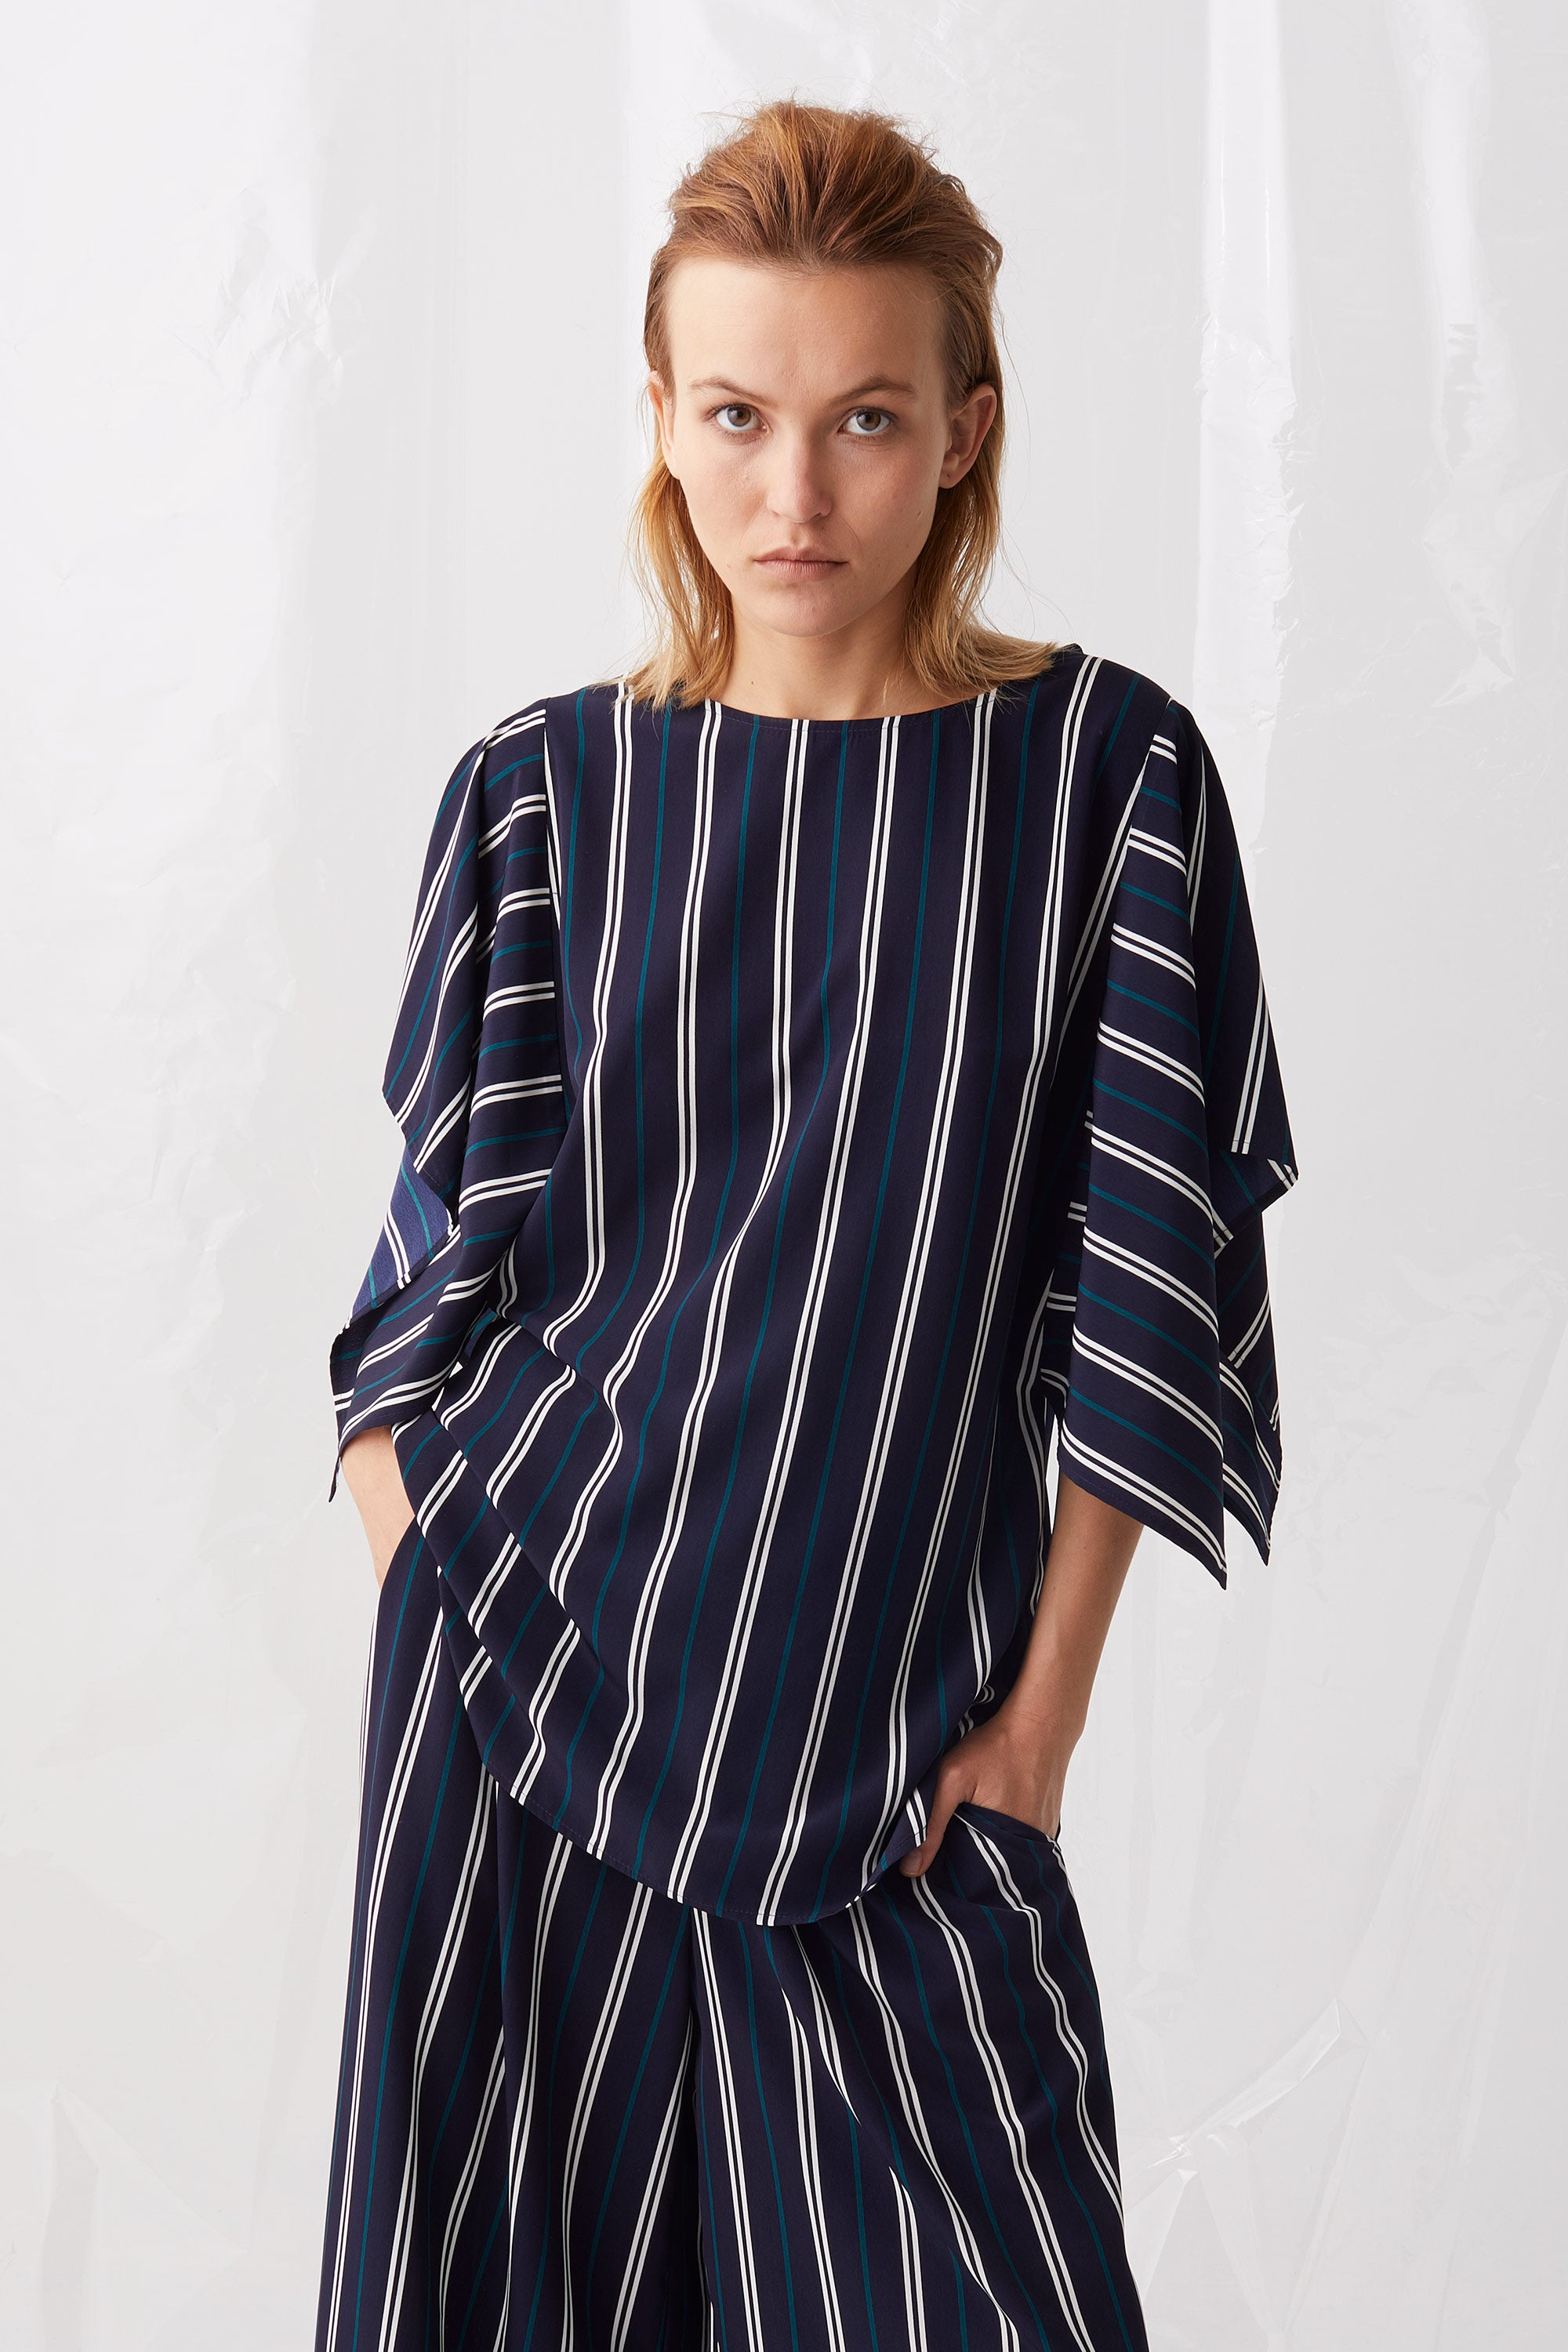 Ricochet NZ Fashion Designer Clothing Boutique SS18 Junko Top Stripe Made in NZ